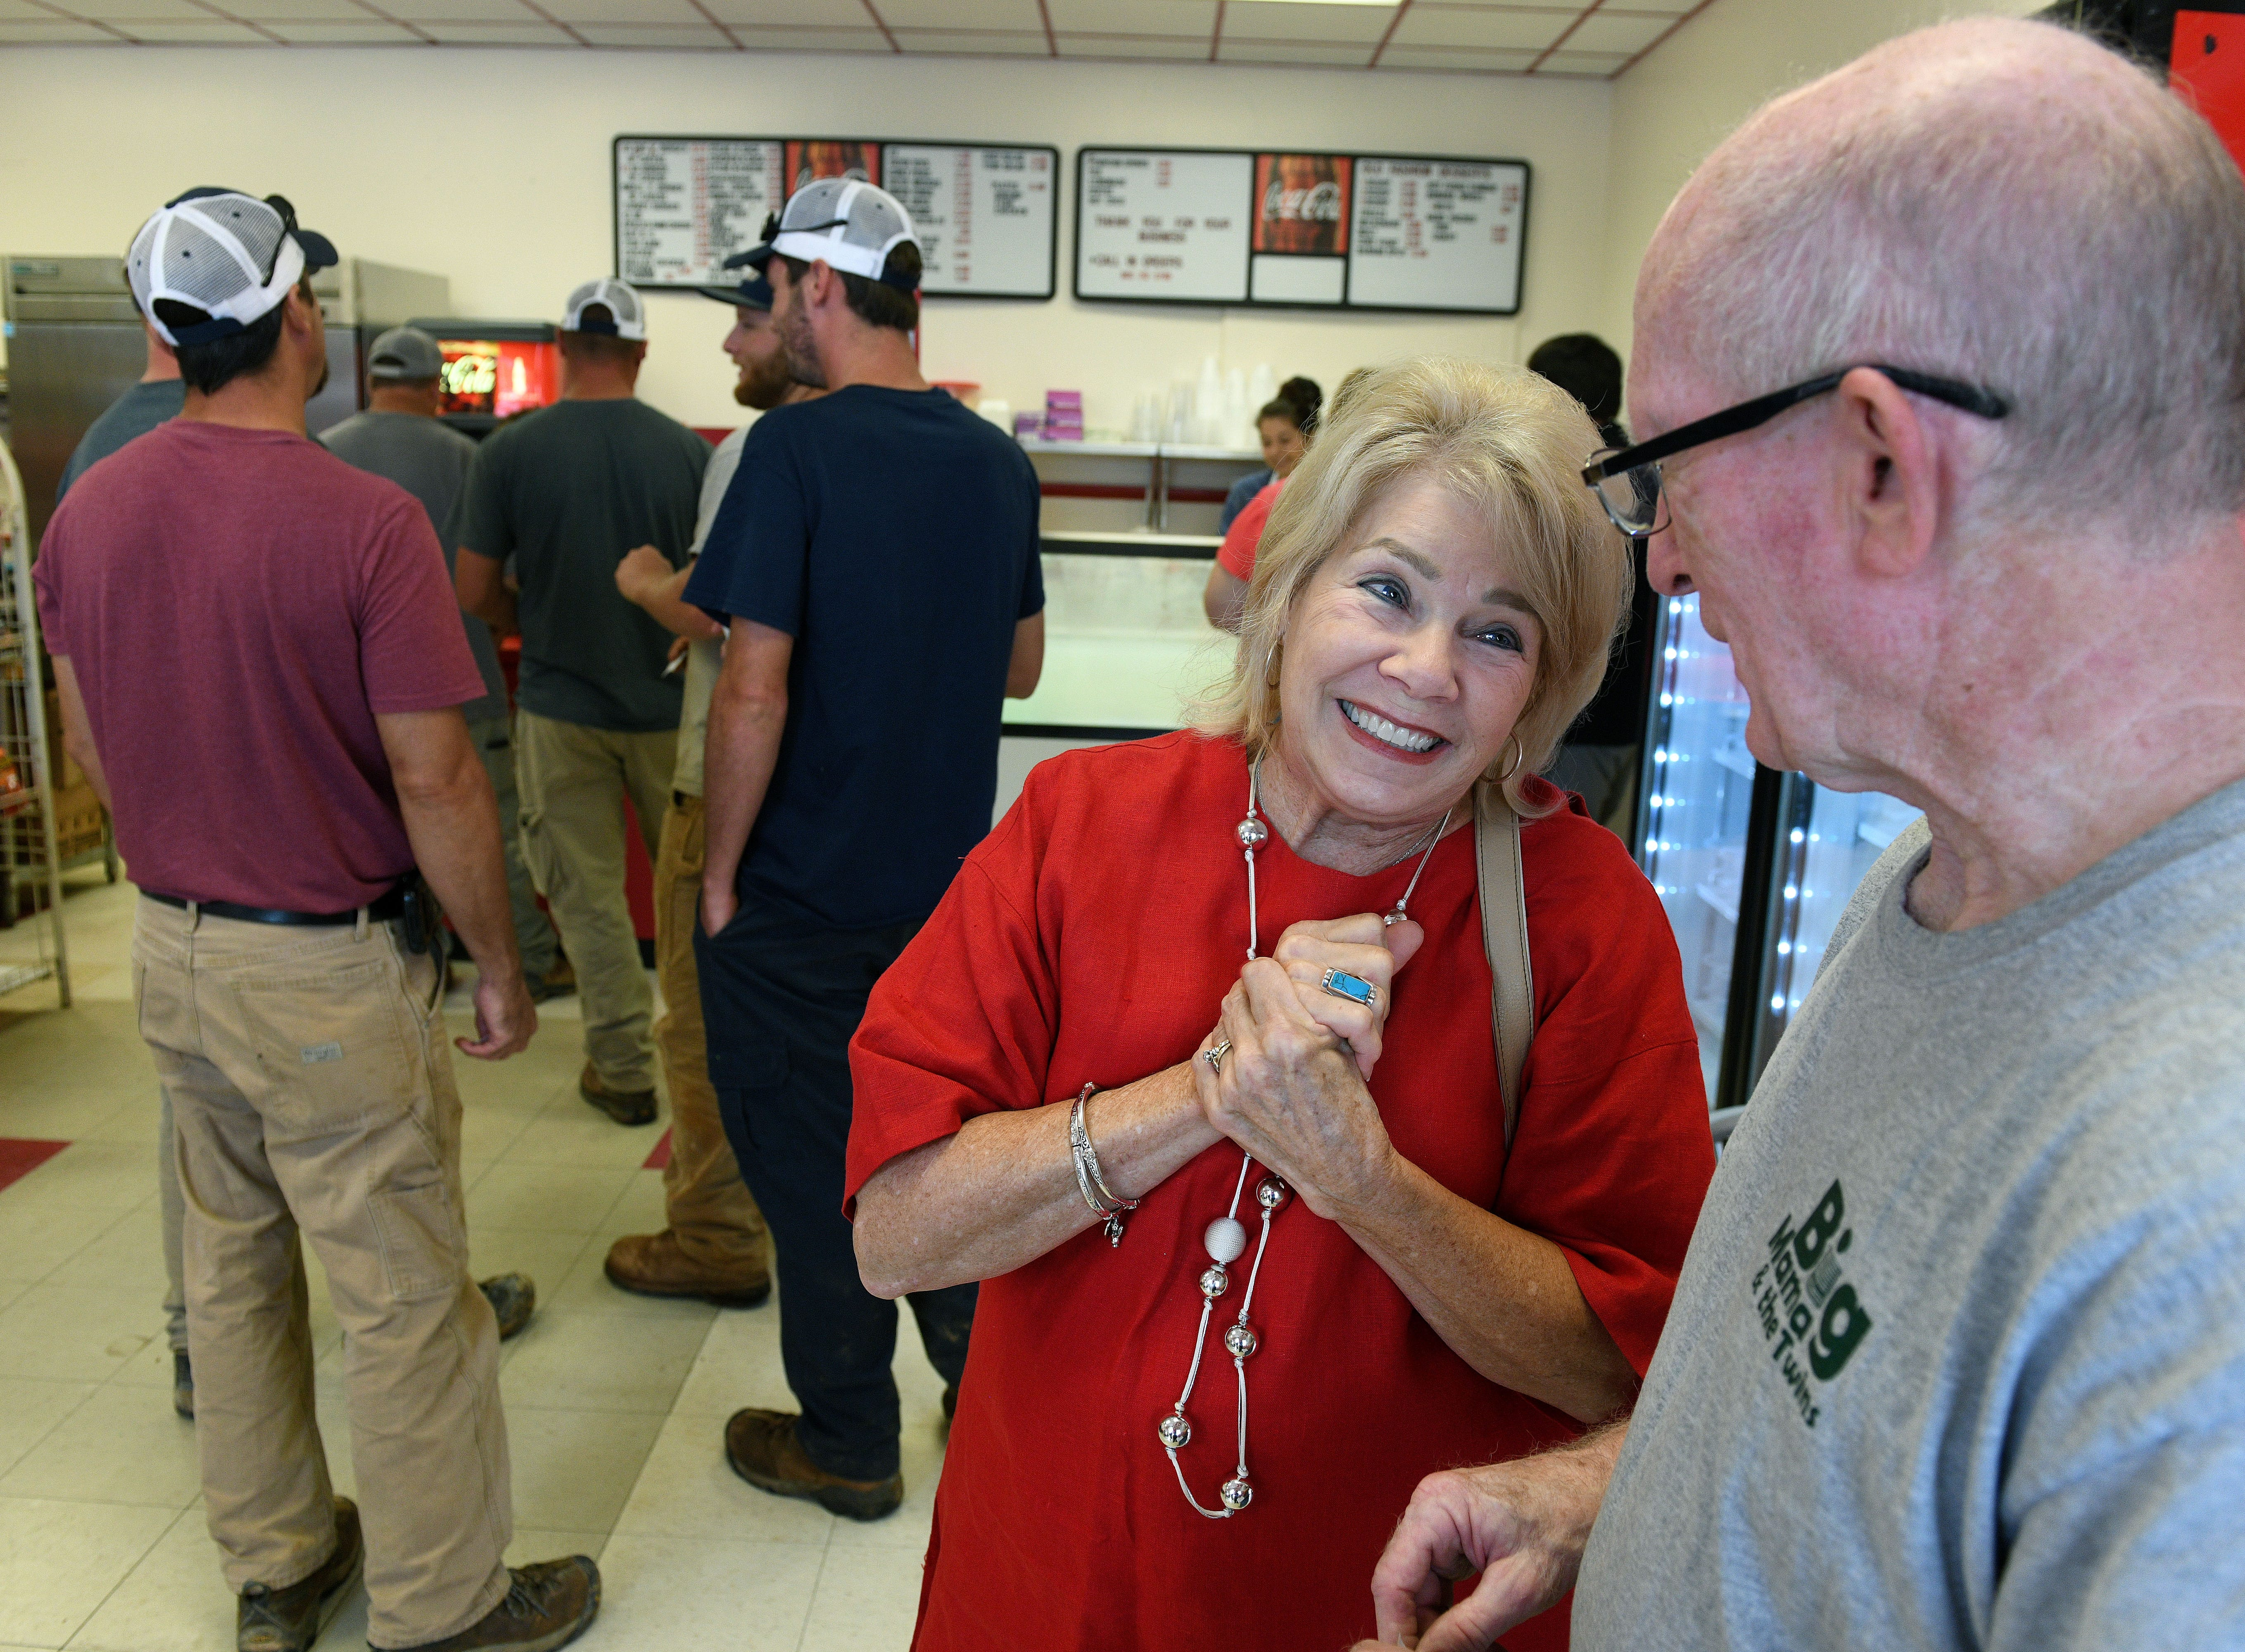 Sharon Wallace Cameron and Dennis Wester, members of the South High School Class of 1965, talk while waiting in line at the newly opened Scotts, in the old Kay's Ice Cream building, Friday, August 10, 2018.